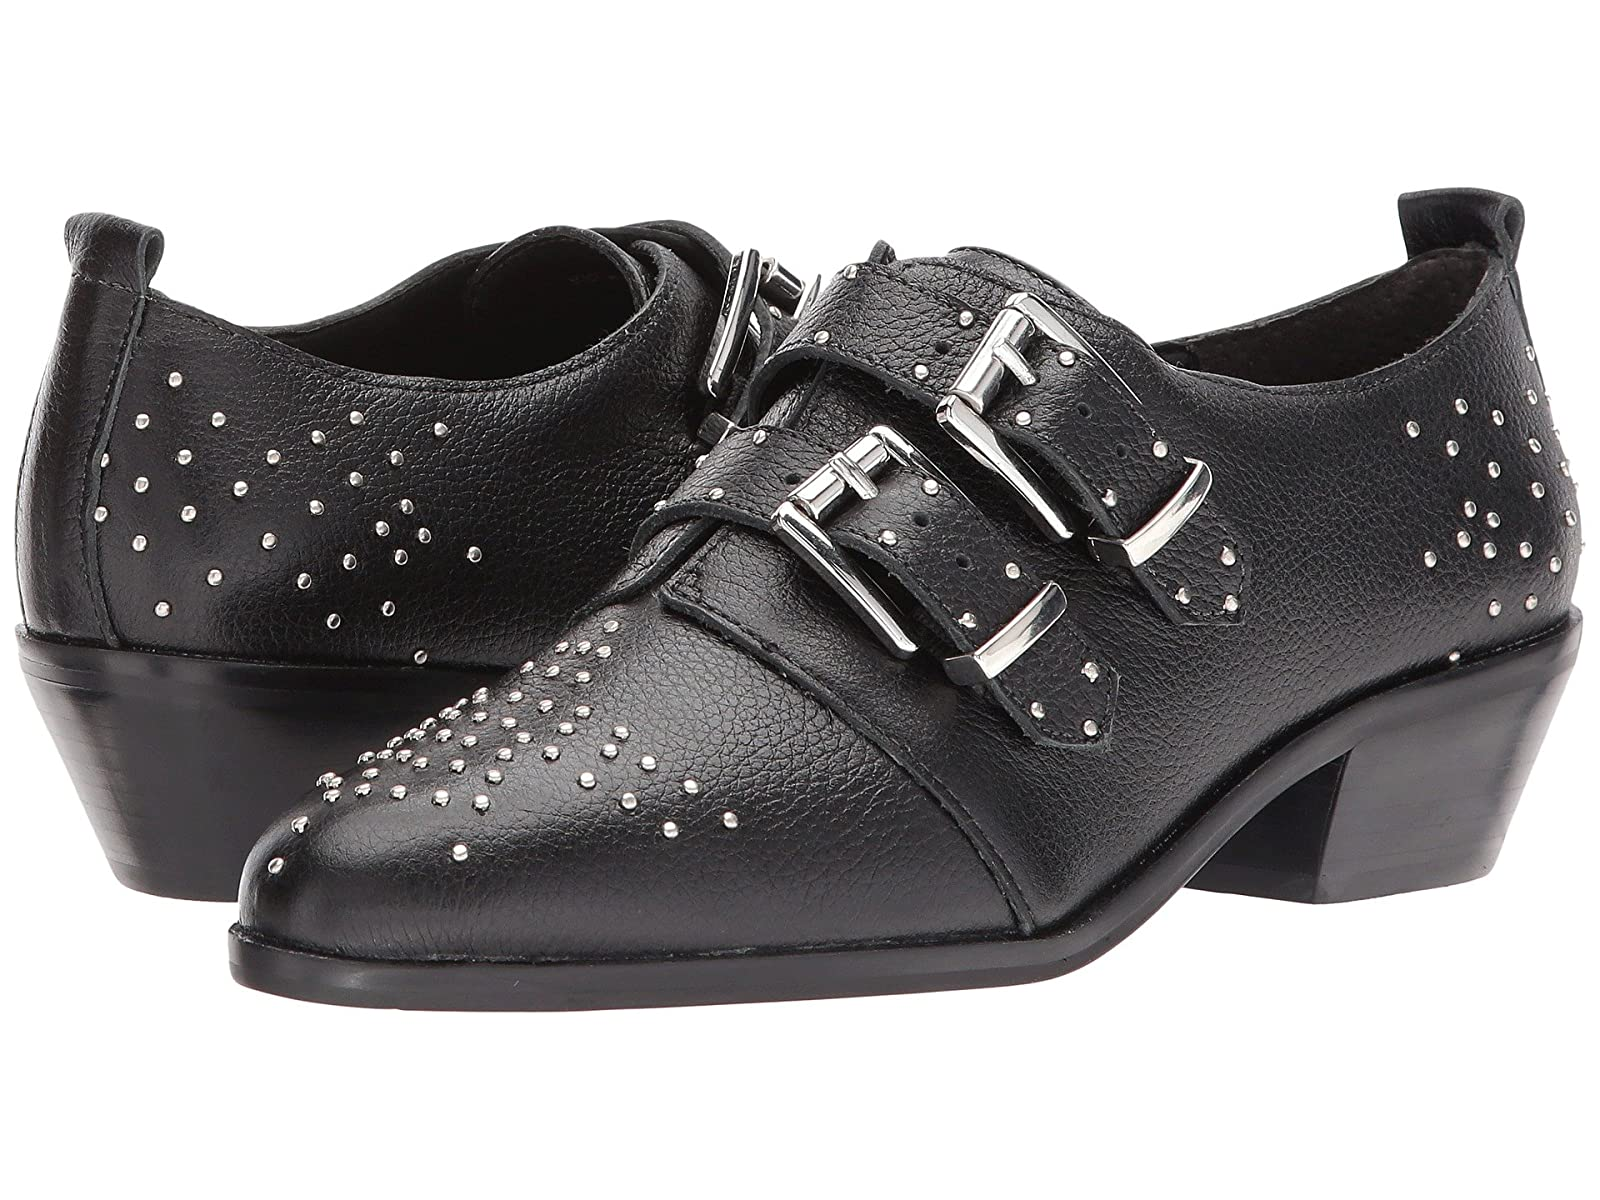 Rebecca Minkoff Astrial BootieCheap and distinctive eye-catching shoes